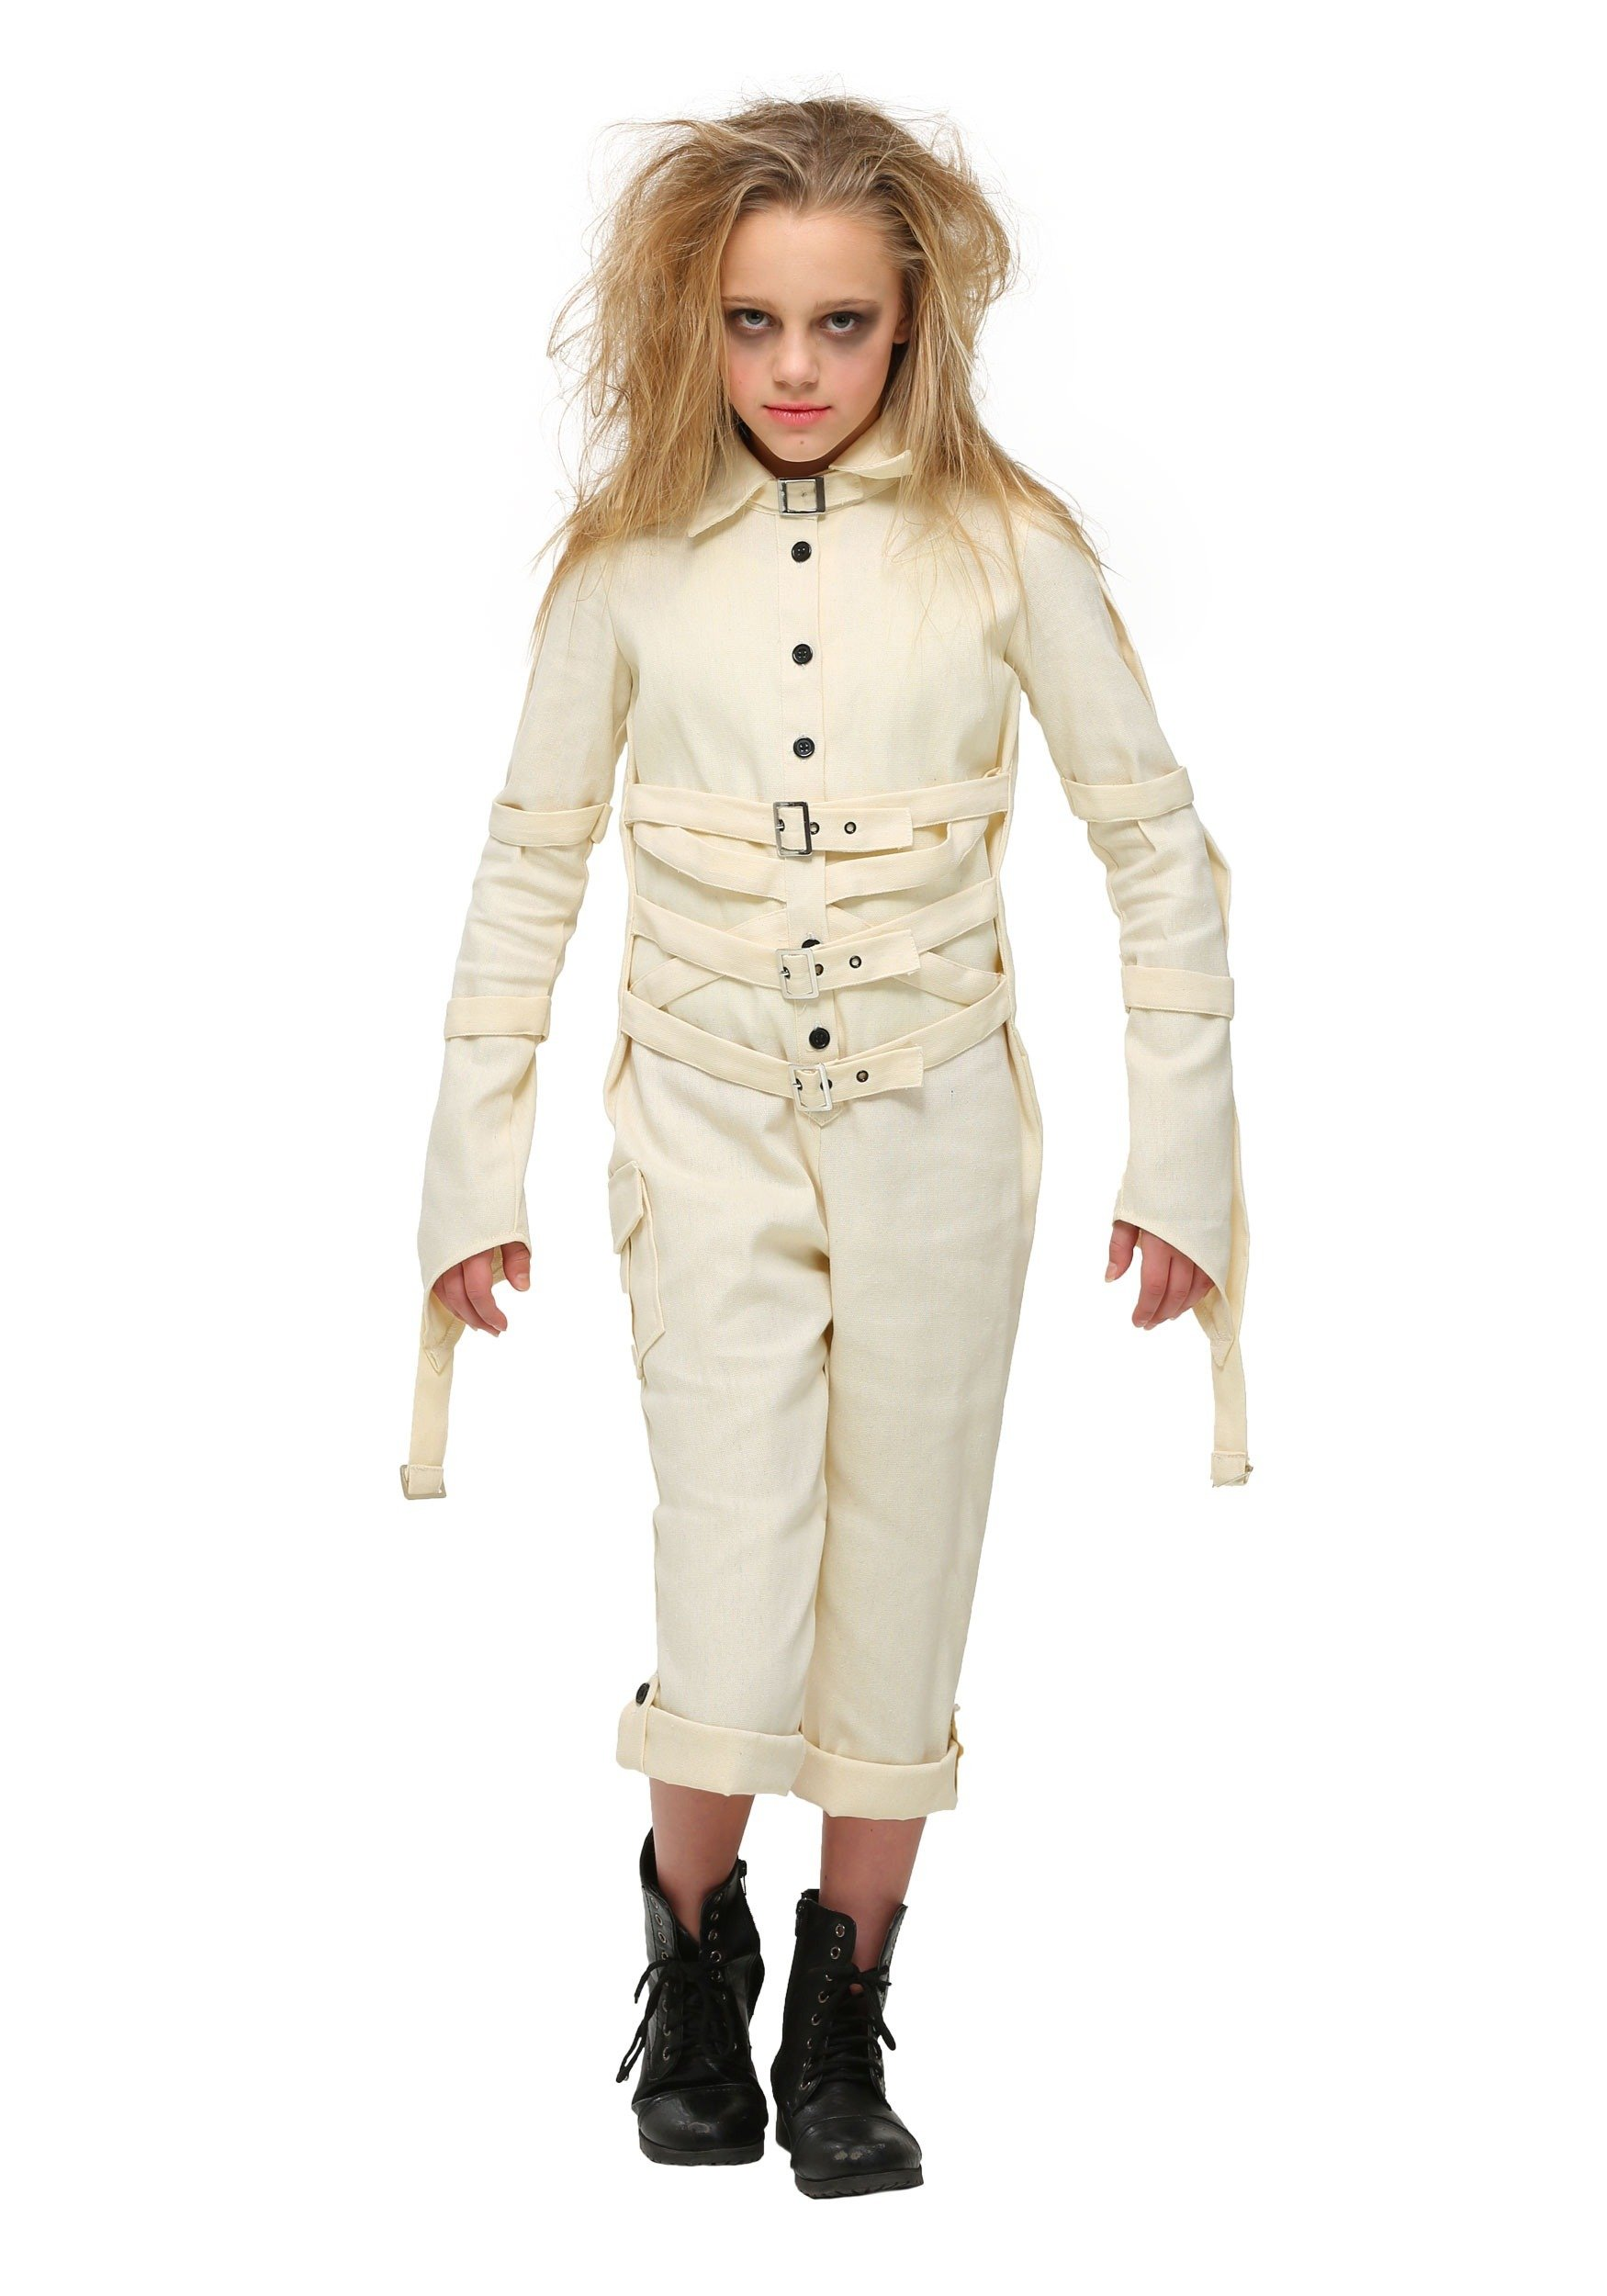 Fun Costumes Classic Straight Jacket Costume Large by FunCostumes